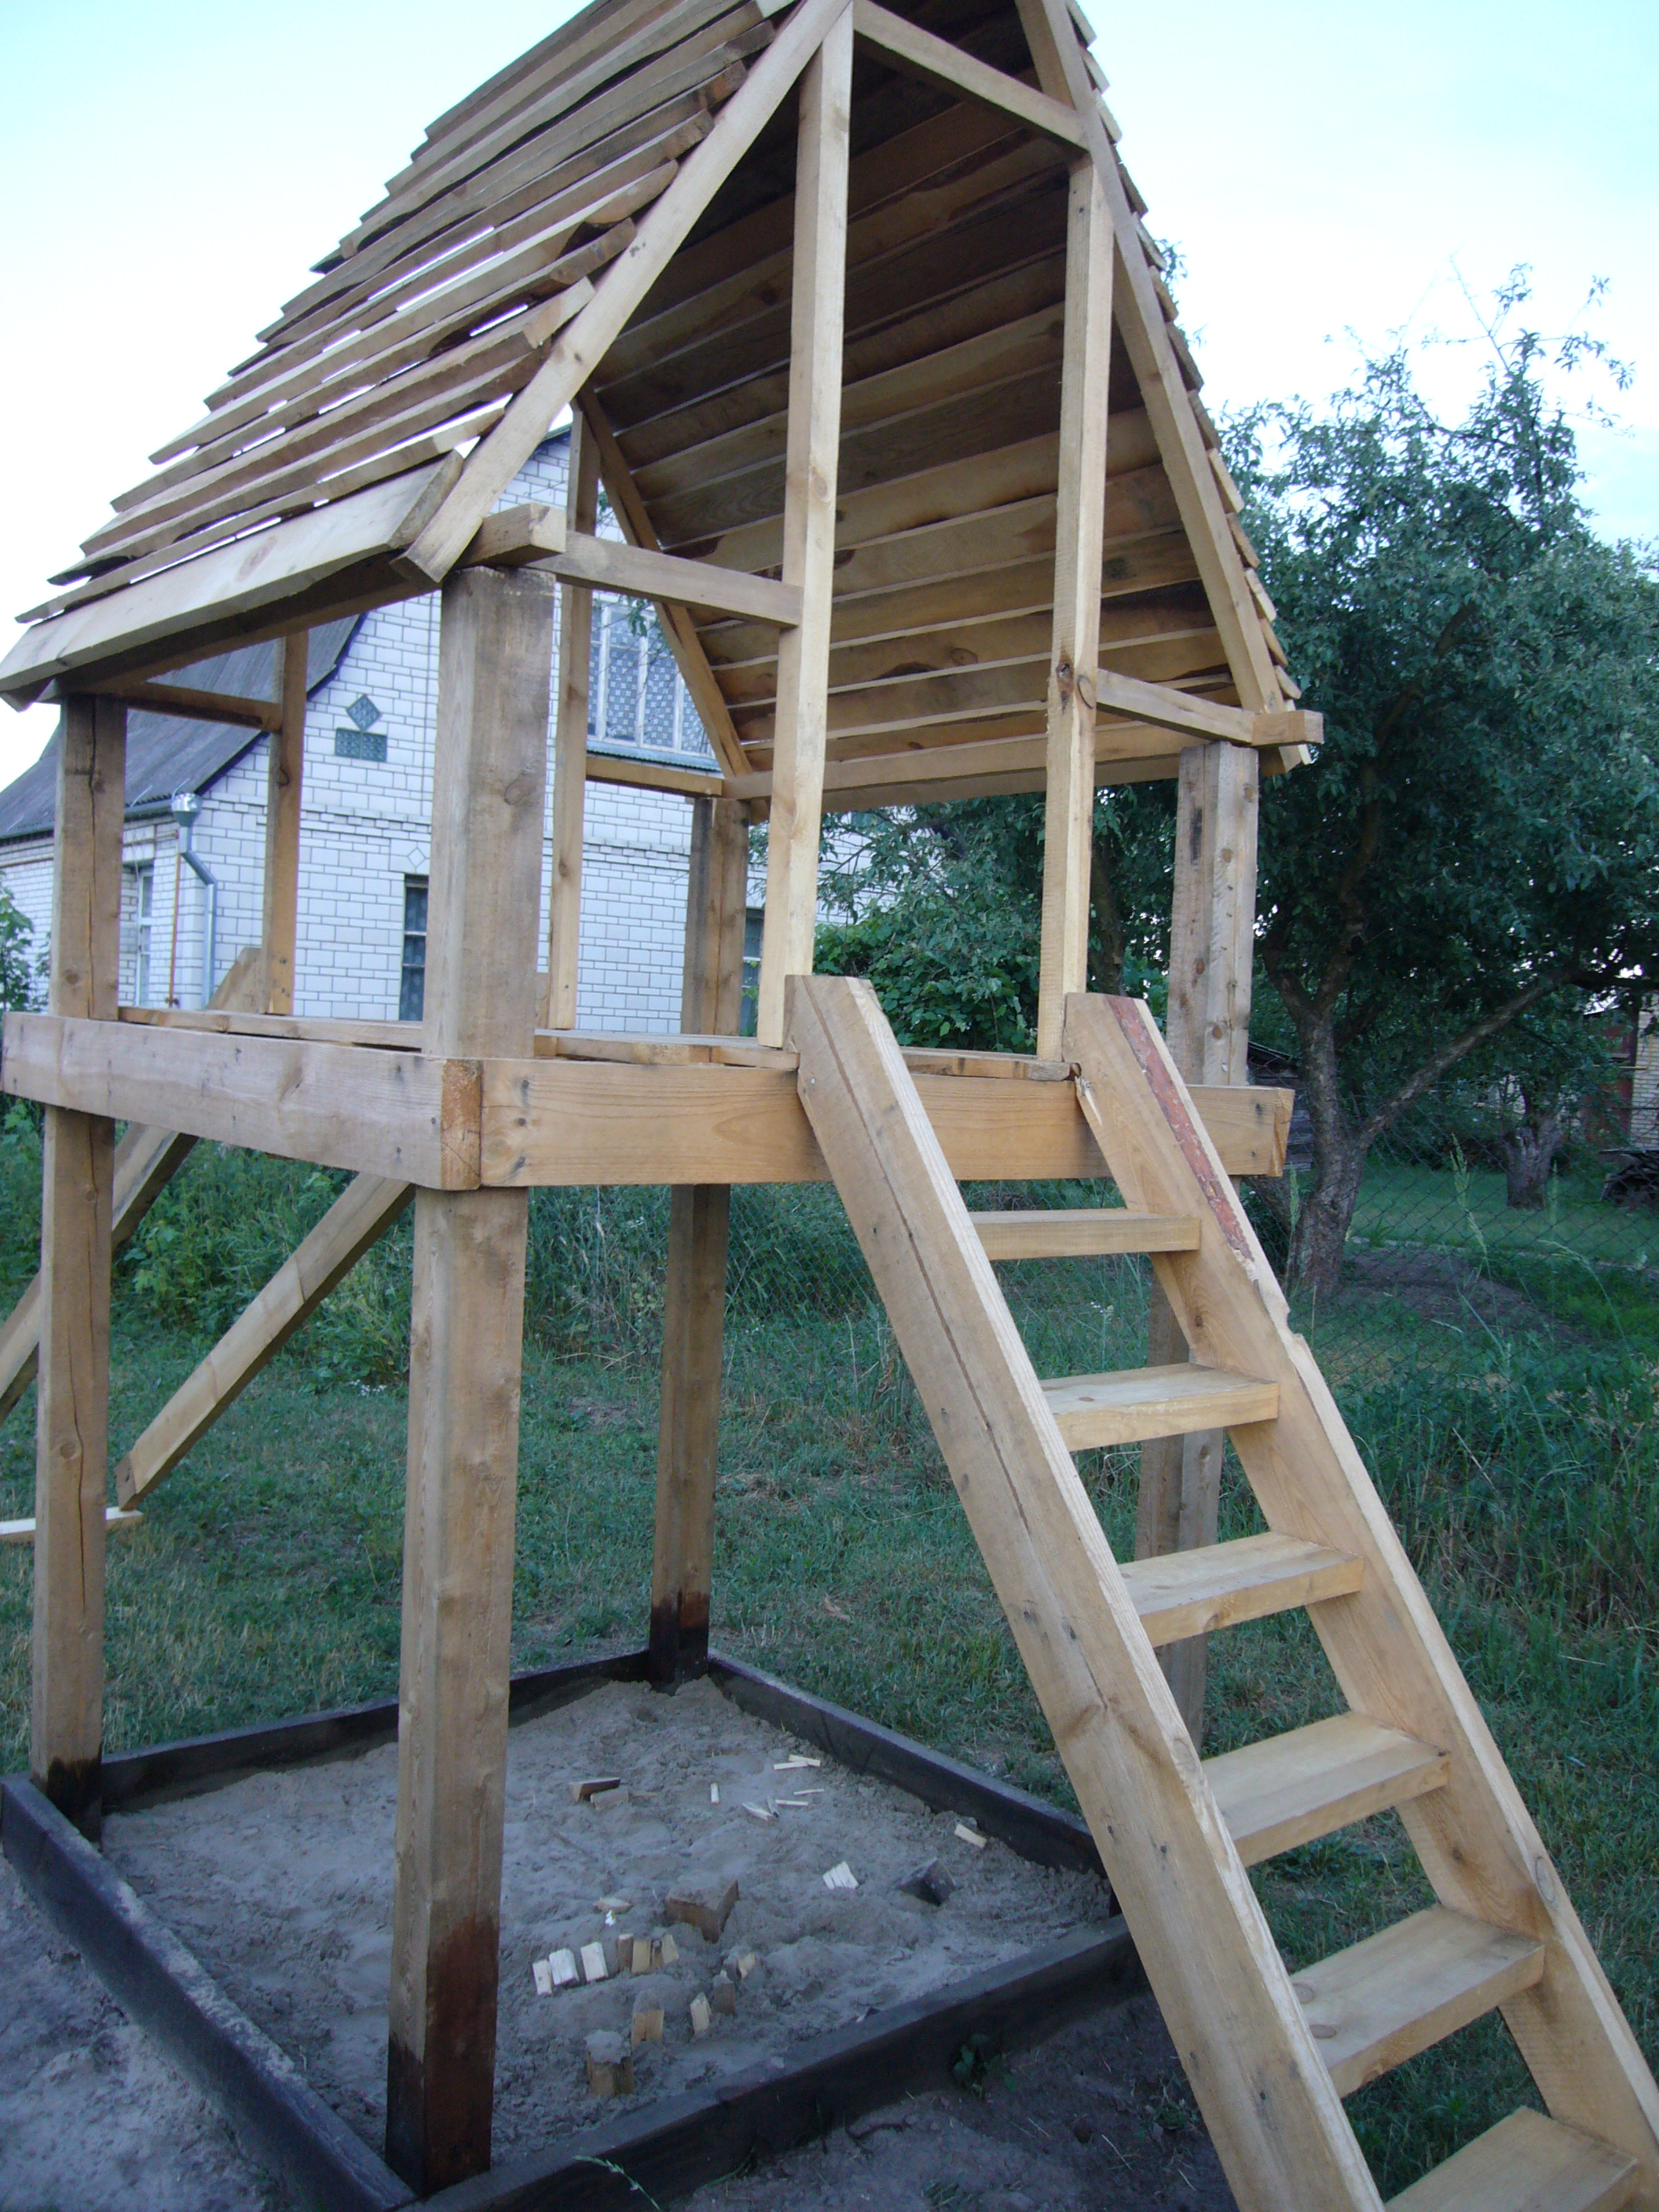 Diy project wood playhouse with slide diy crafts for Easy to build playhouse